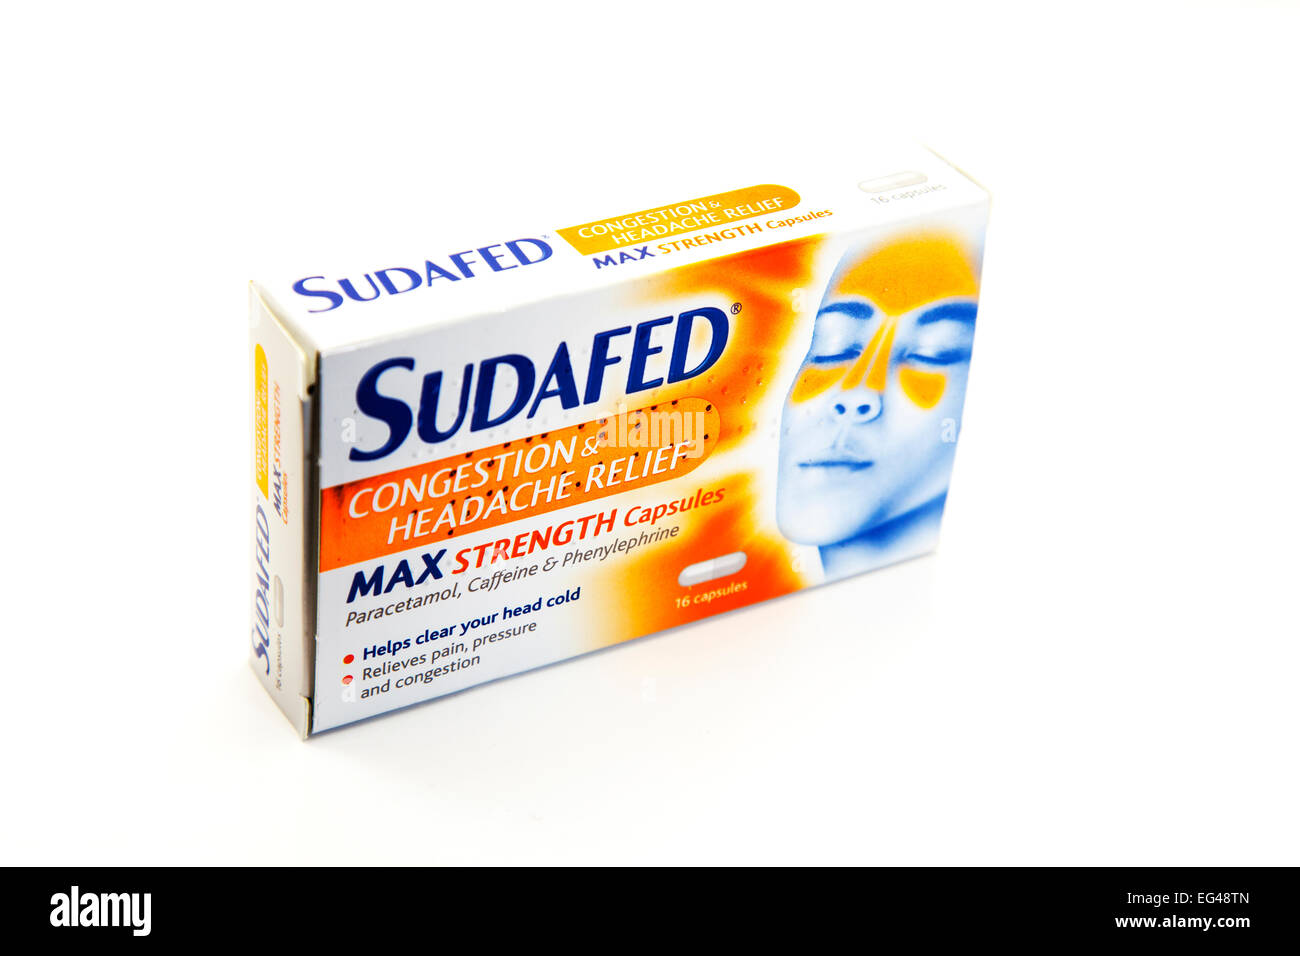 Sudafed max strength congestion headache relief remedy medication cold flu cut out white background - Stock Image